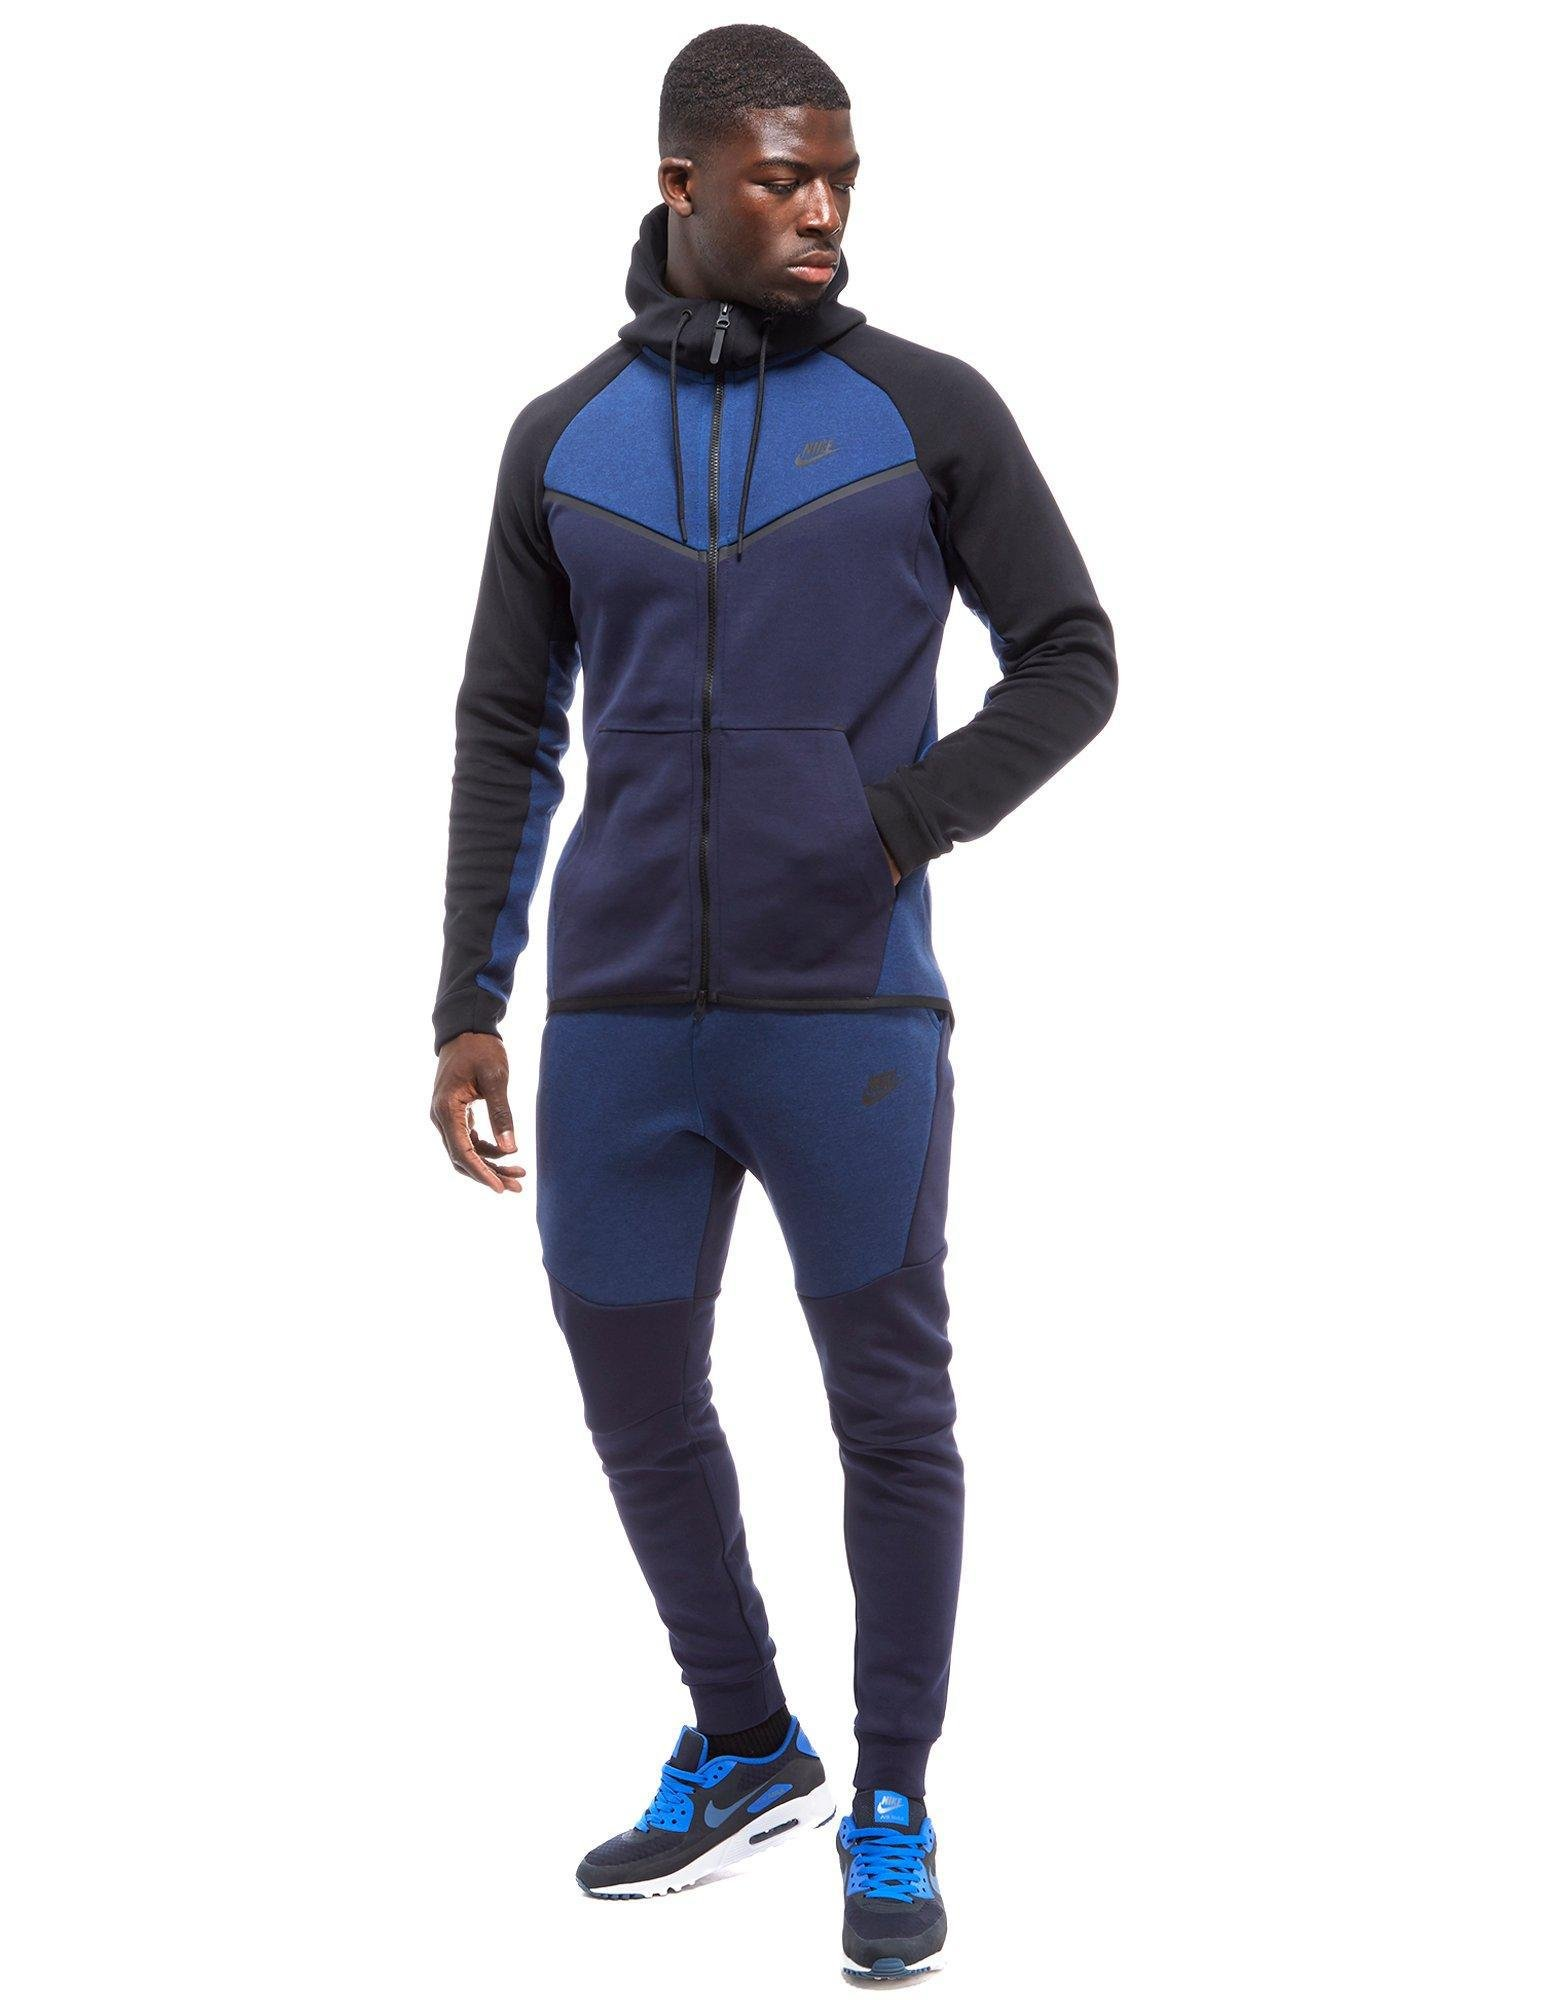 Nike Tracksuit Windrunner Top Quality 046d0 Bc093